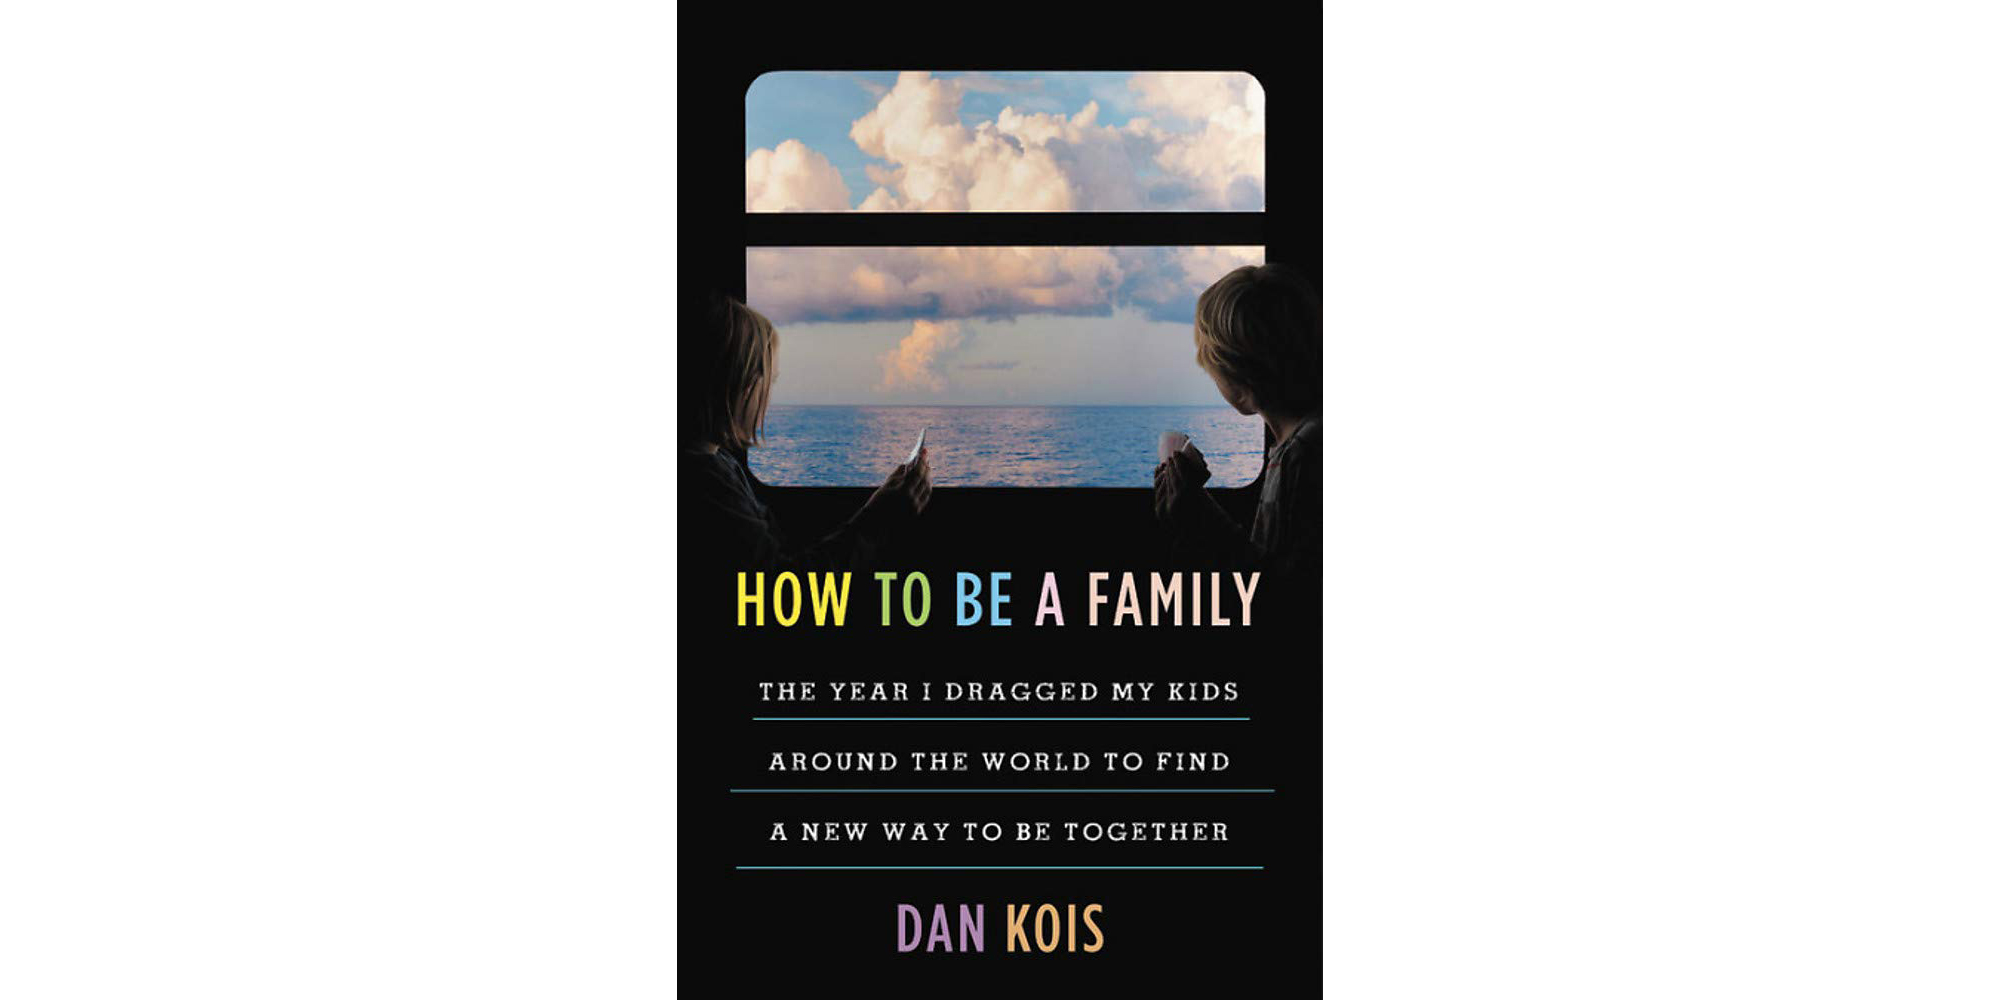 How to Be a Family, by Dan Kois